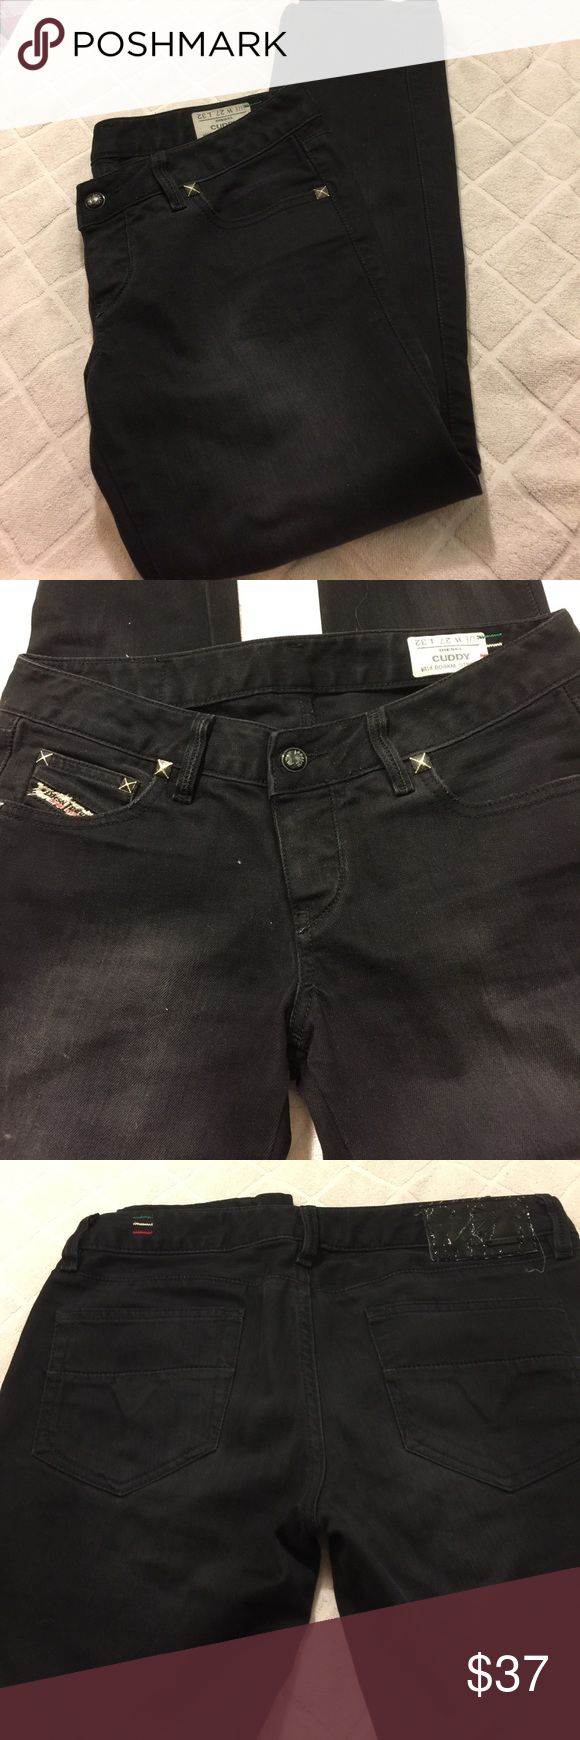 Diesel Women Cuddy Jeans Diesel Denim Cuddy stretch jeans, size W 27, L 32, made in Italy. In good preowned condition. Diesel Jeans